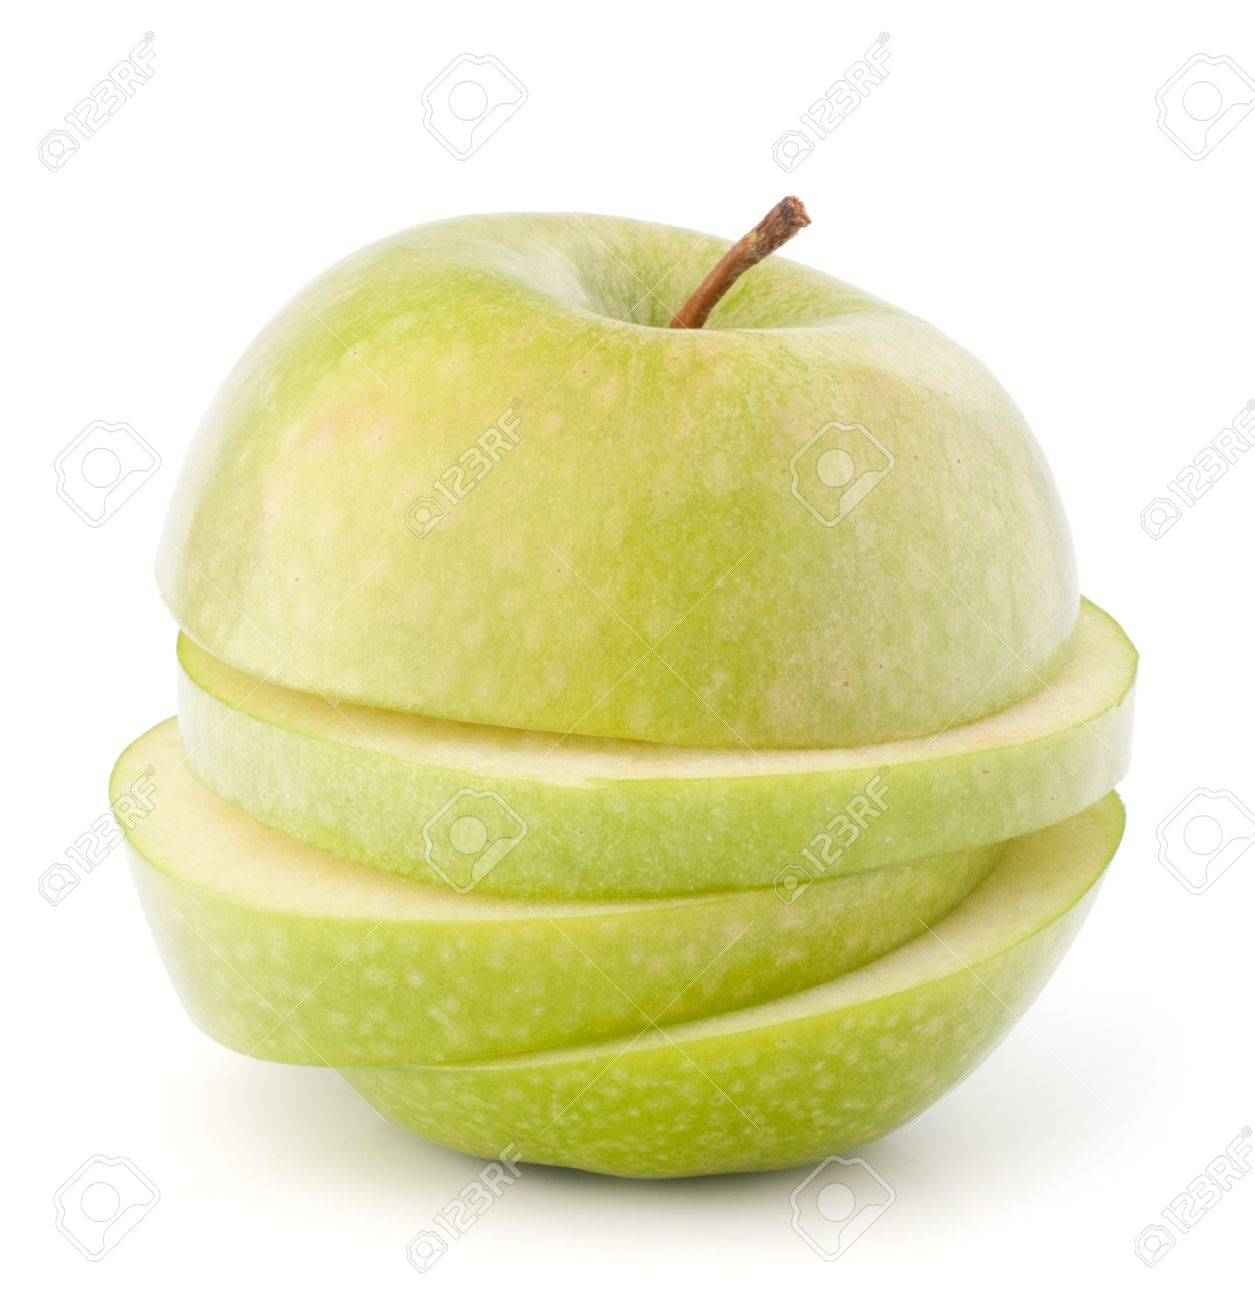 Green sliced apple isolated on white background cutout Stock Photo - 13820017